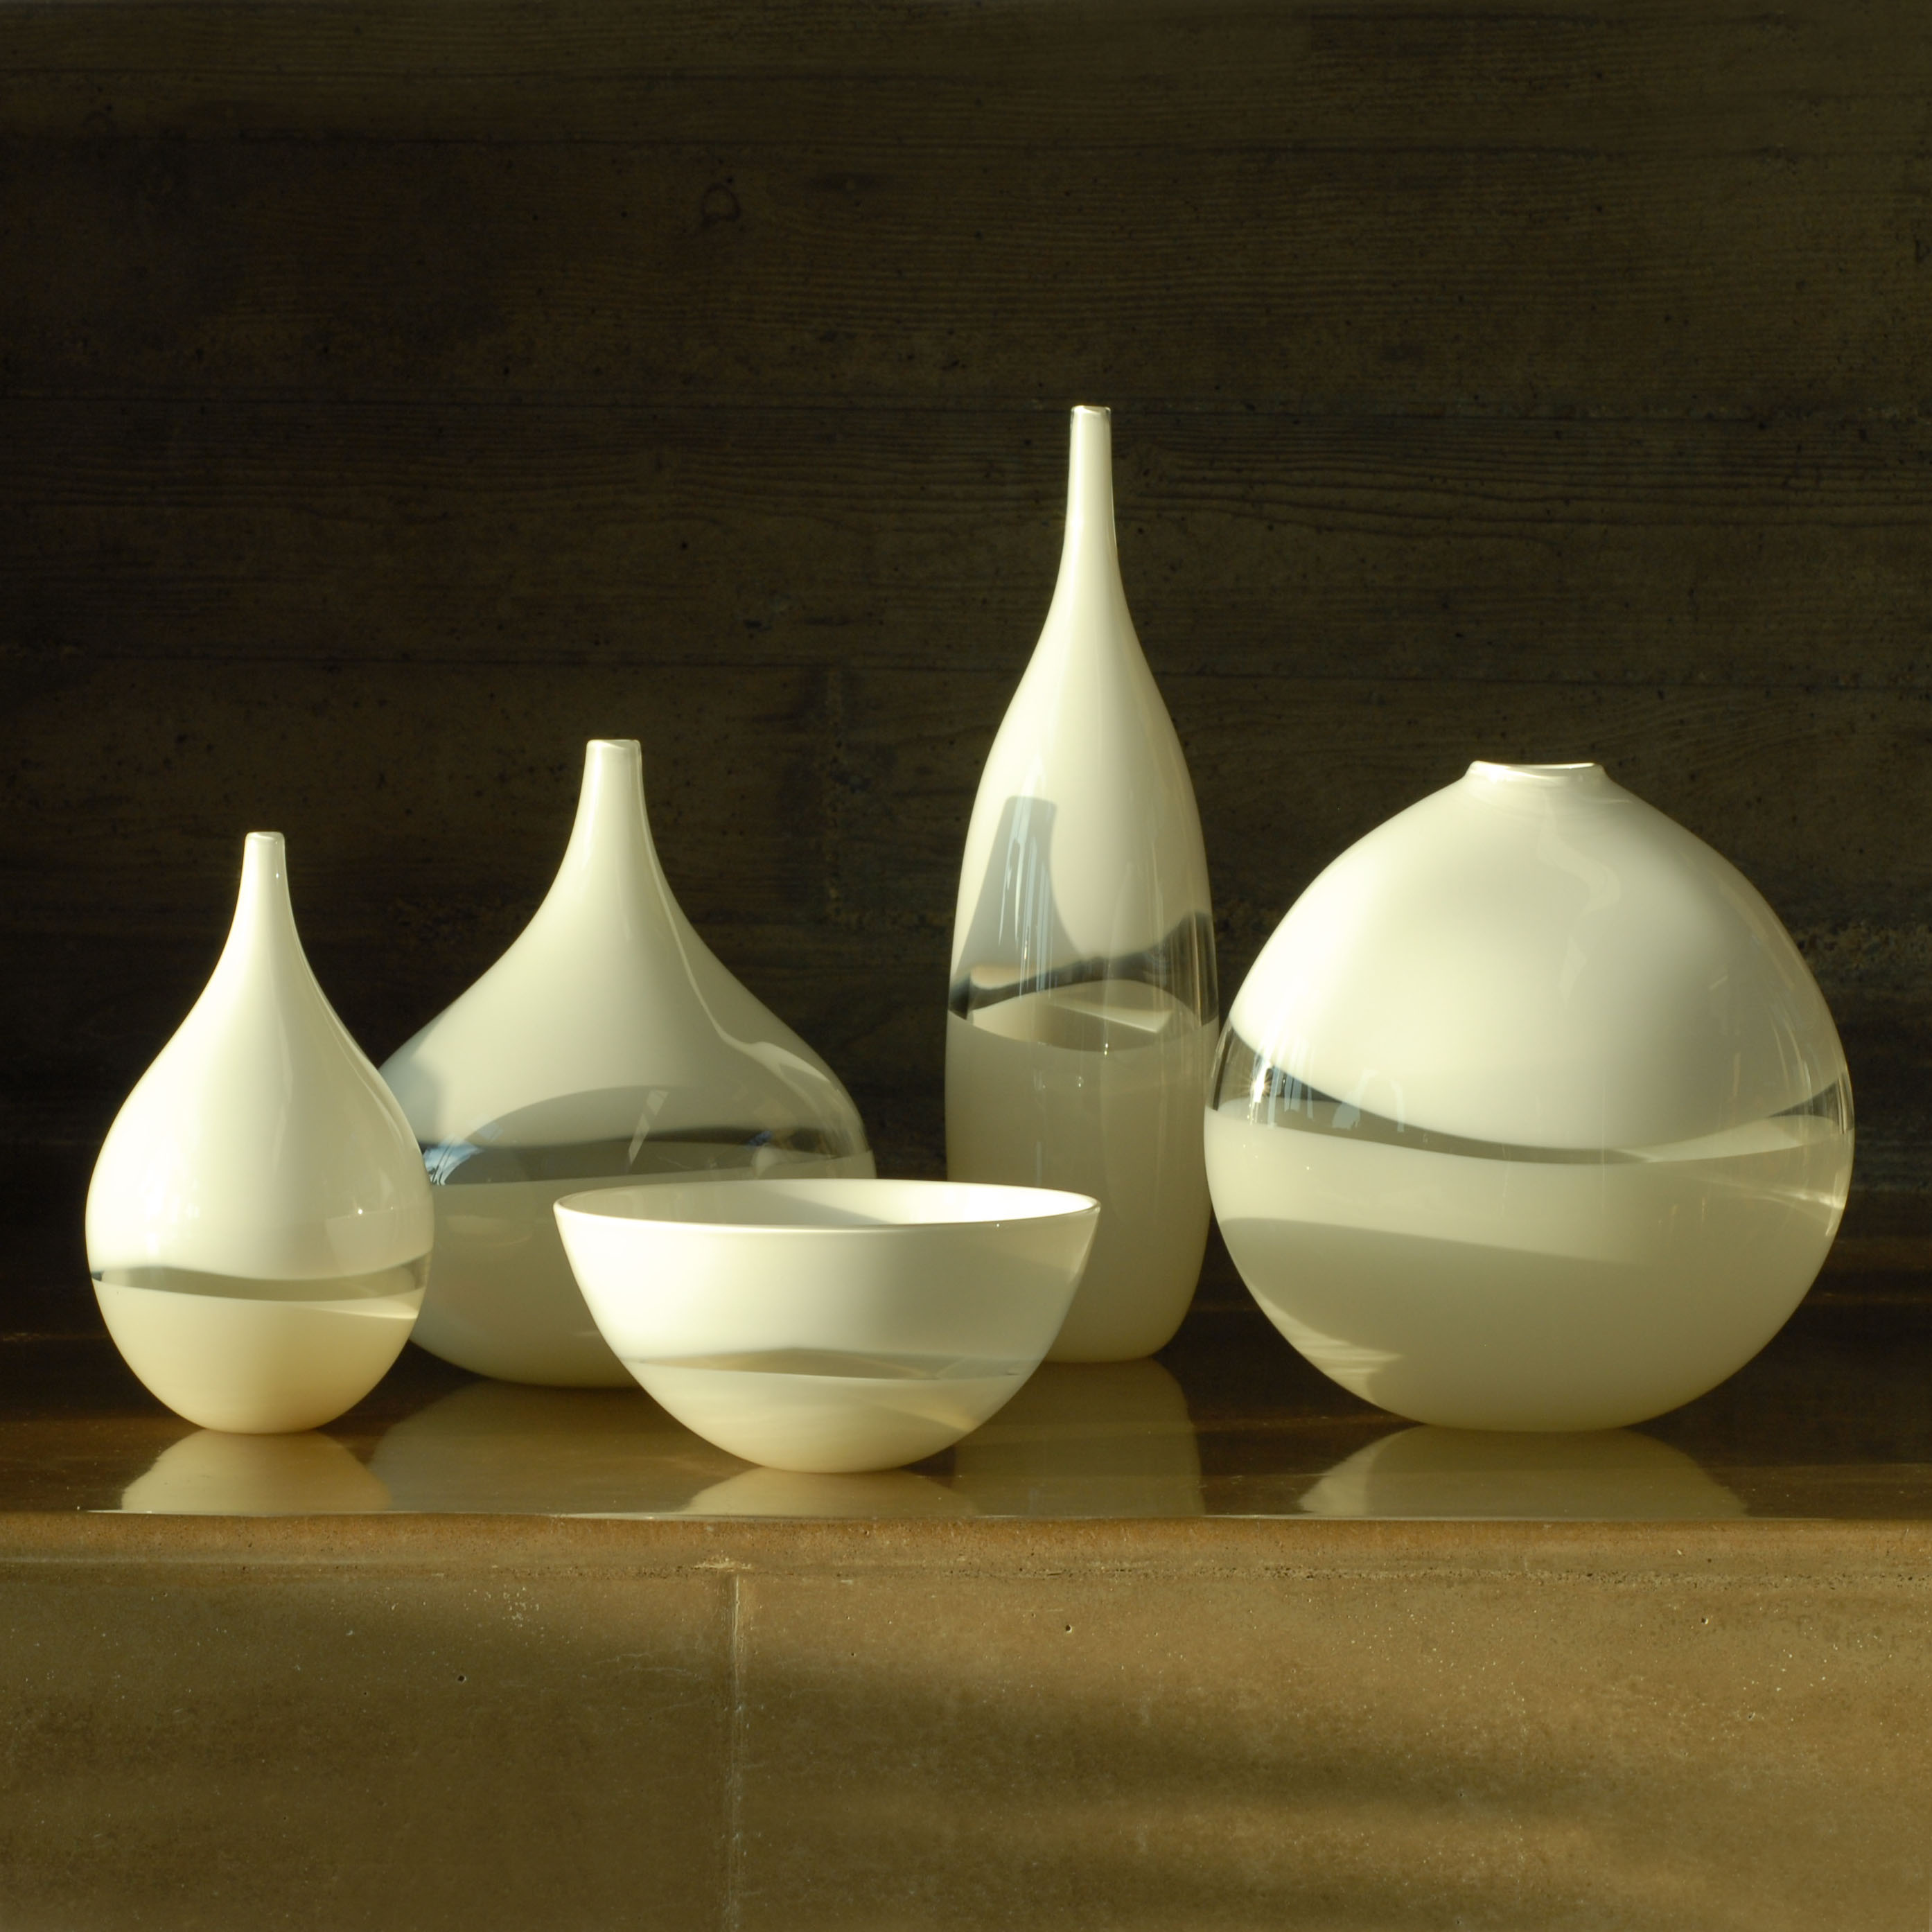 Hand blown glass vase. White/Ivory Lattimo Teardrop Vase by siemon and salazar